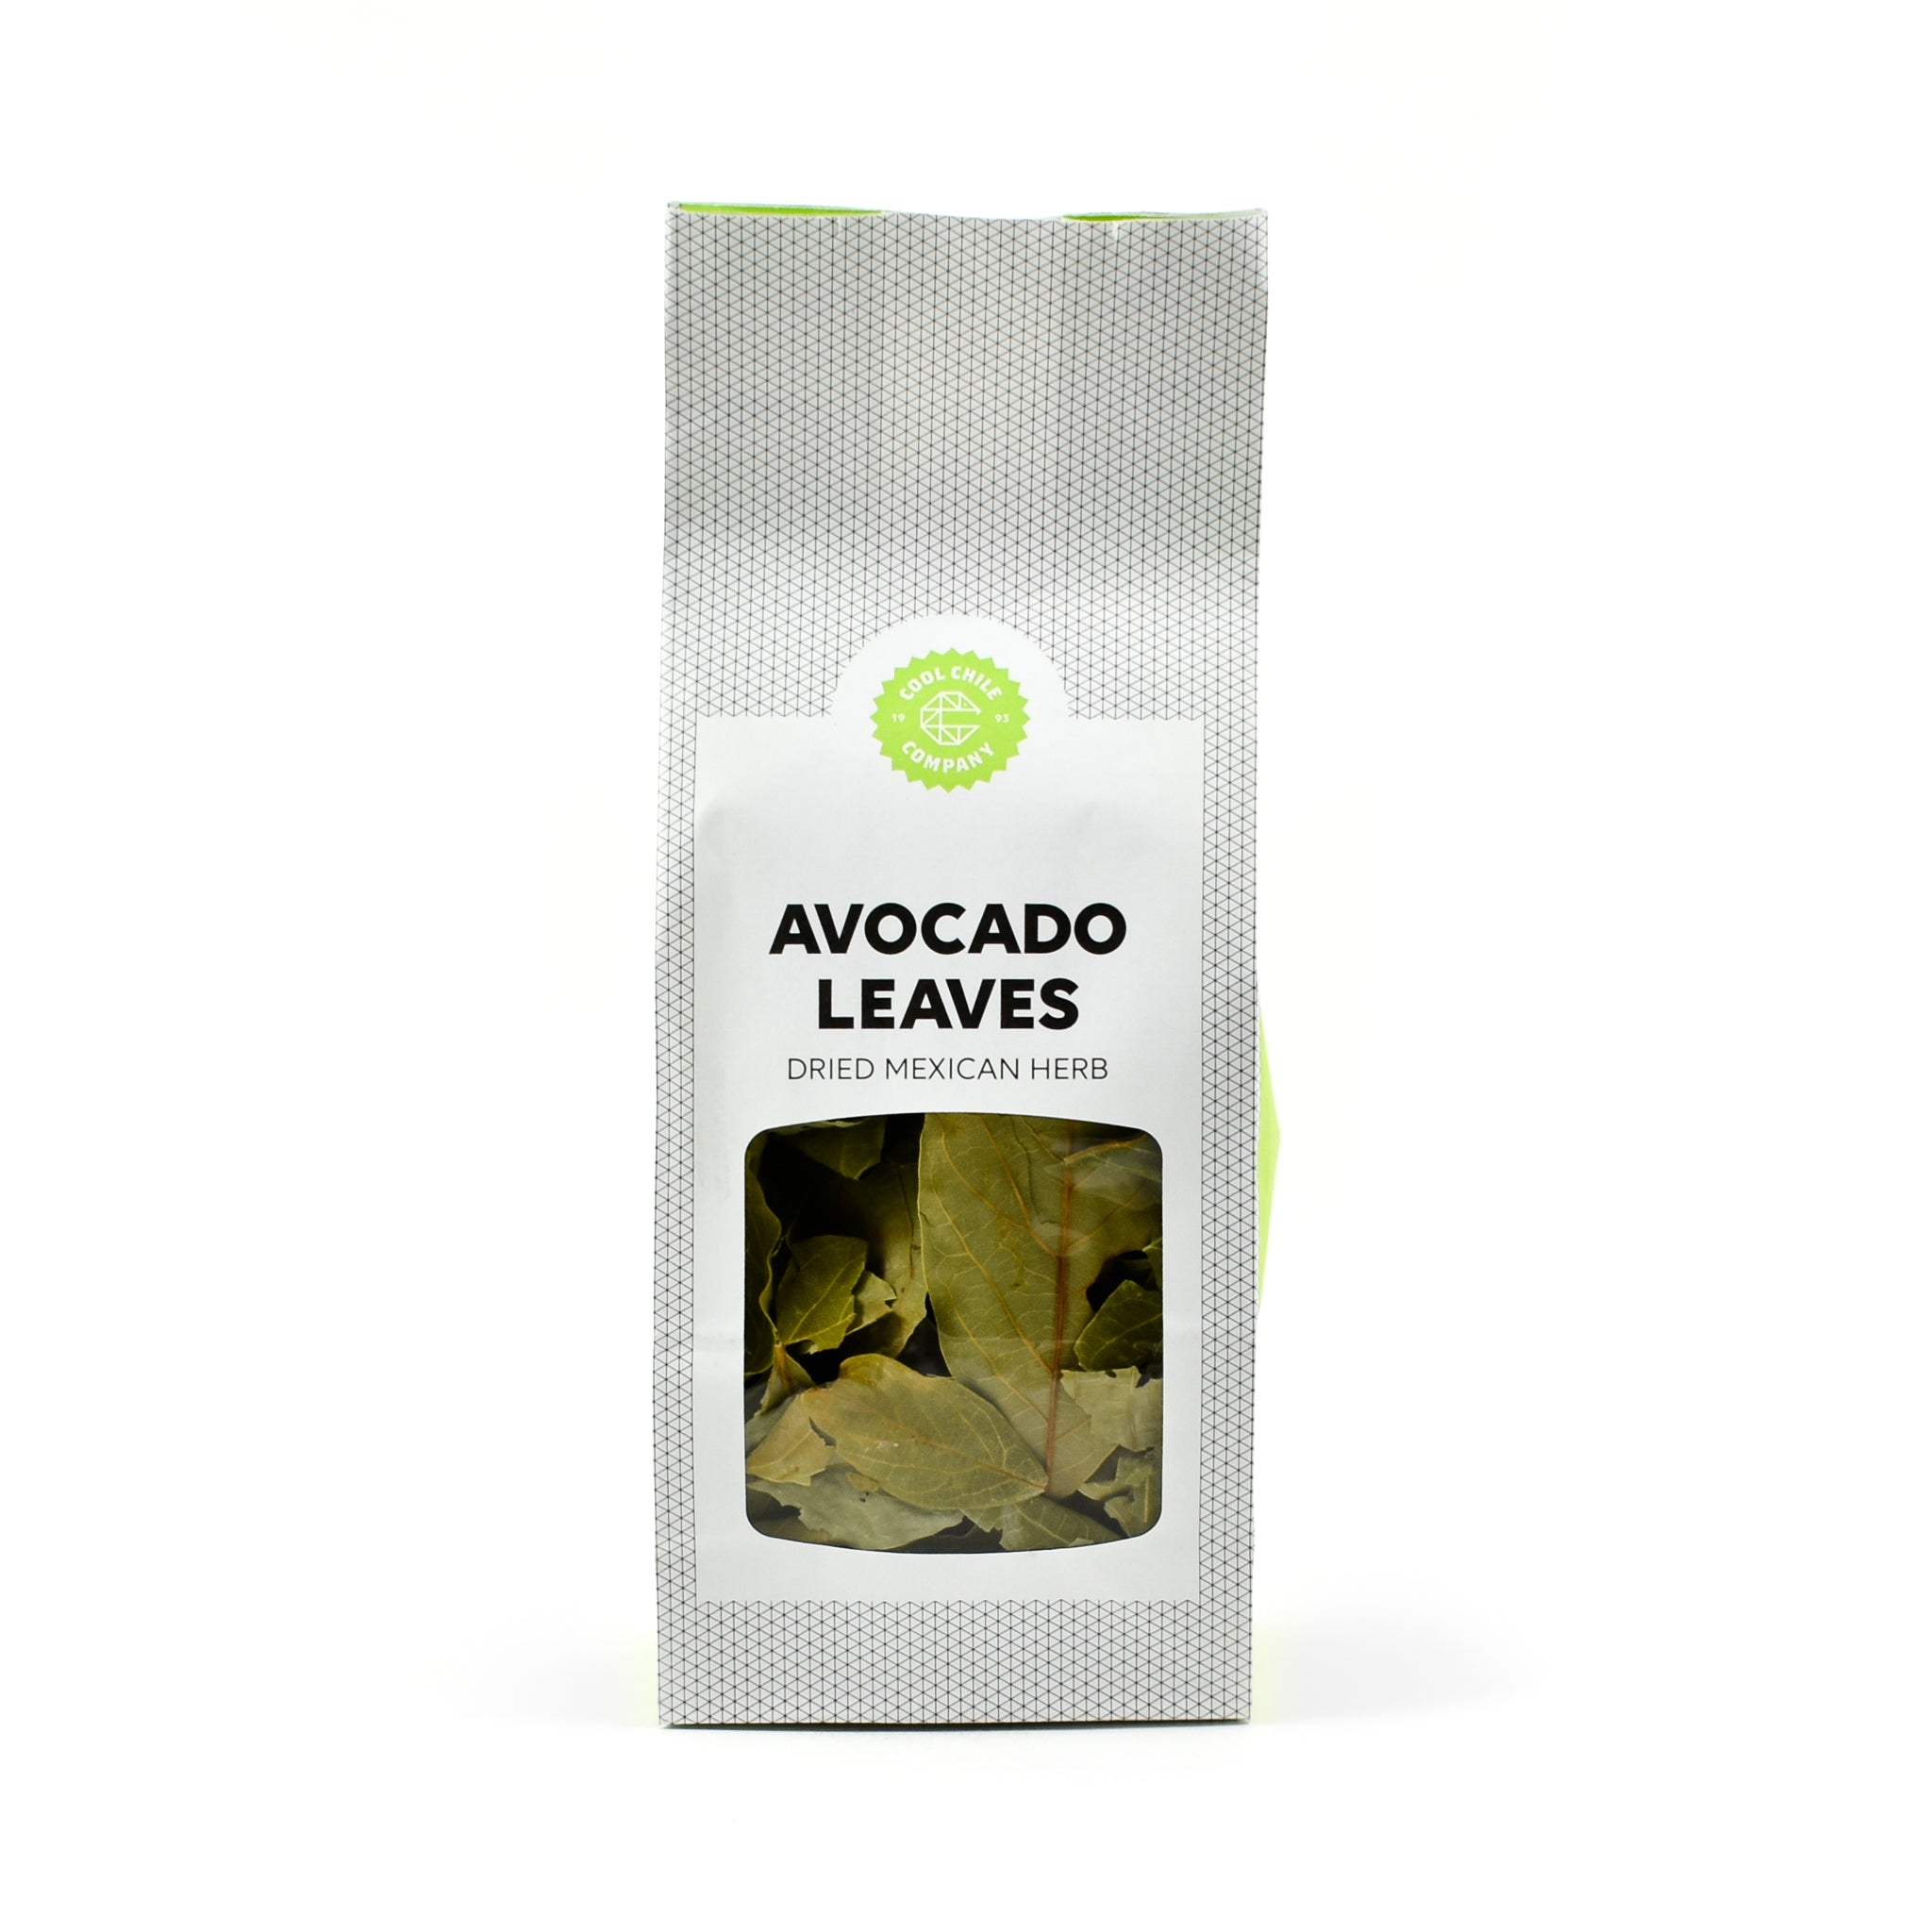 Cool Chile Co Avocado Leaves 10g Ingredients Seasonings Mexican Food